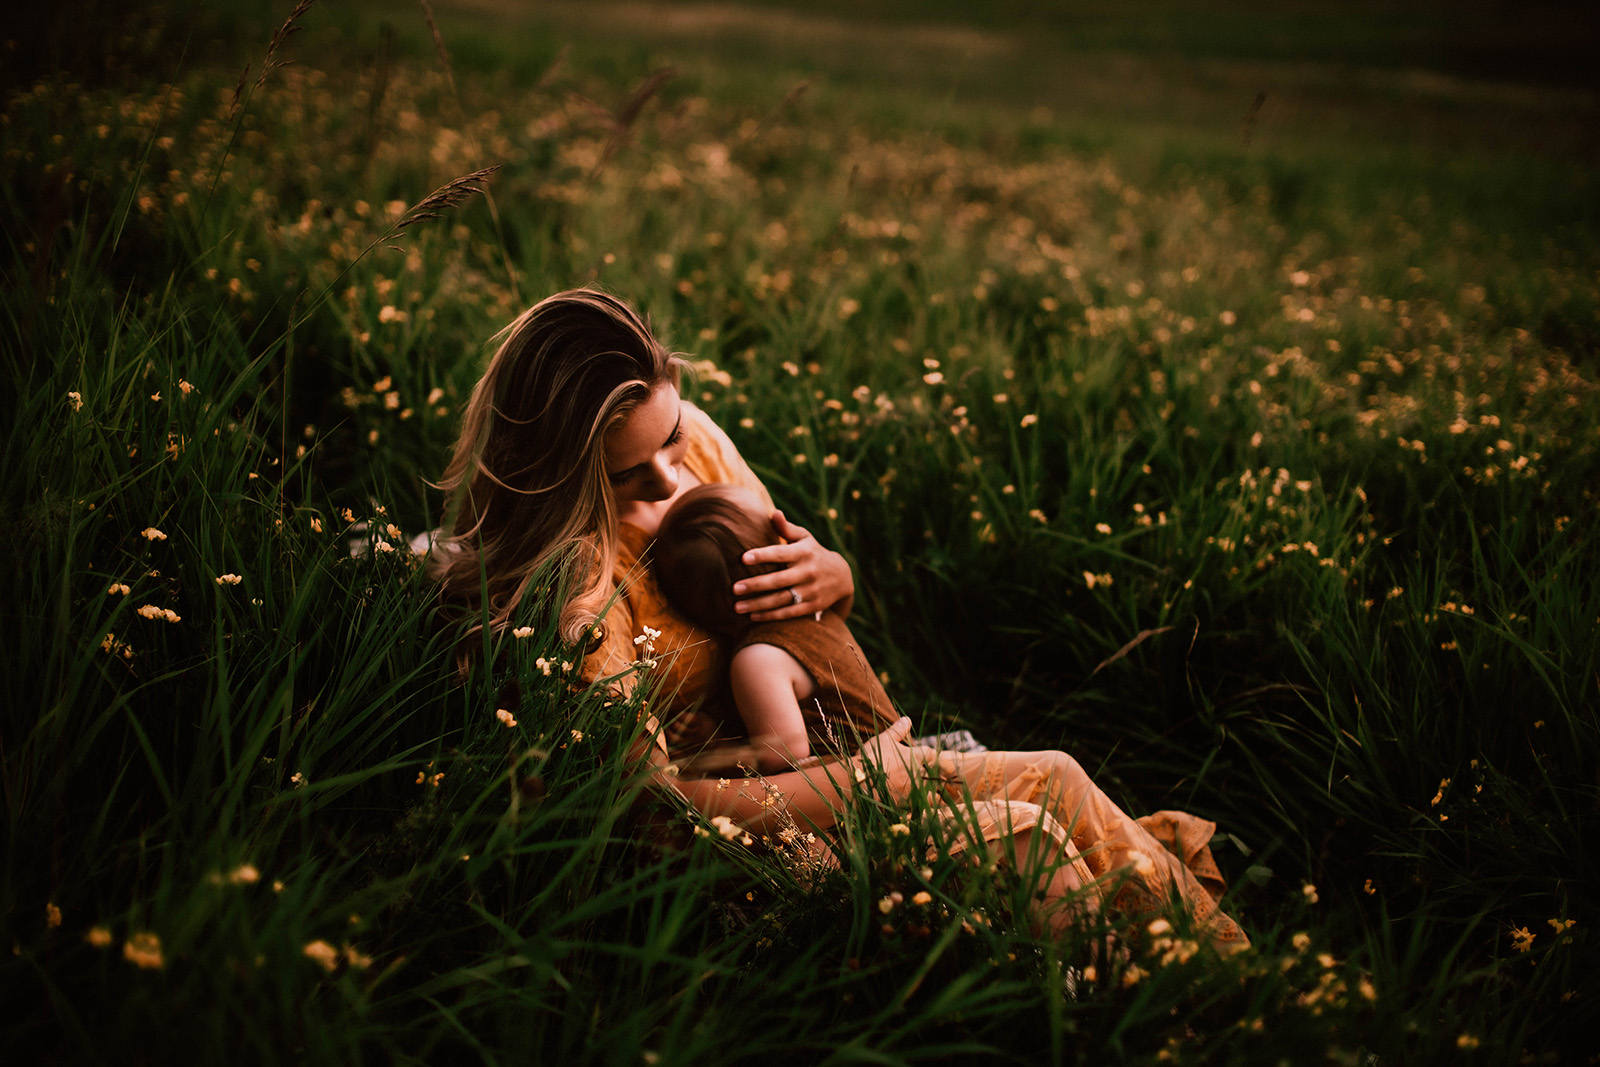 A woman is holding her child and they are sitting in a meadow.